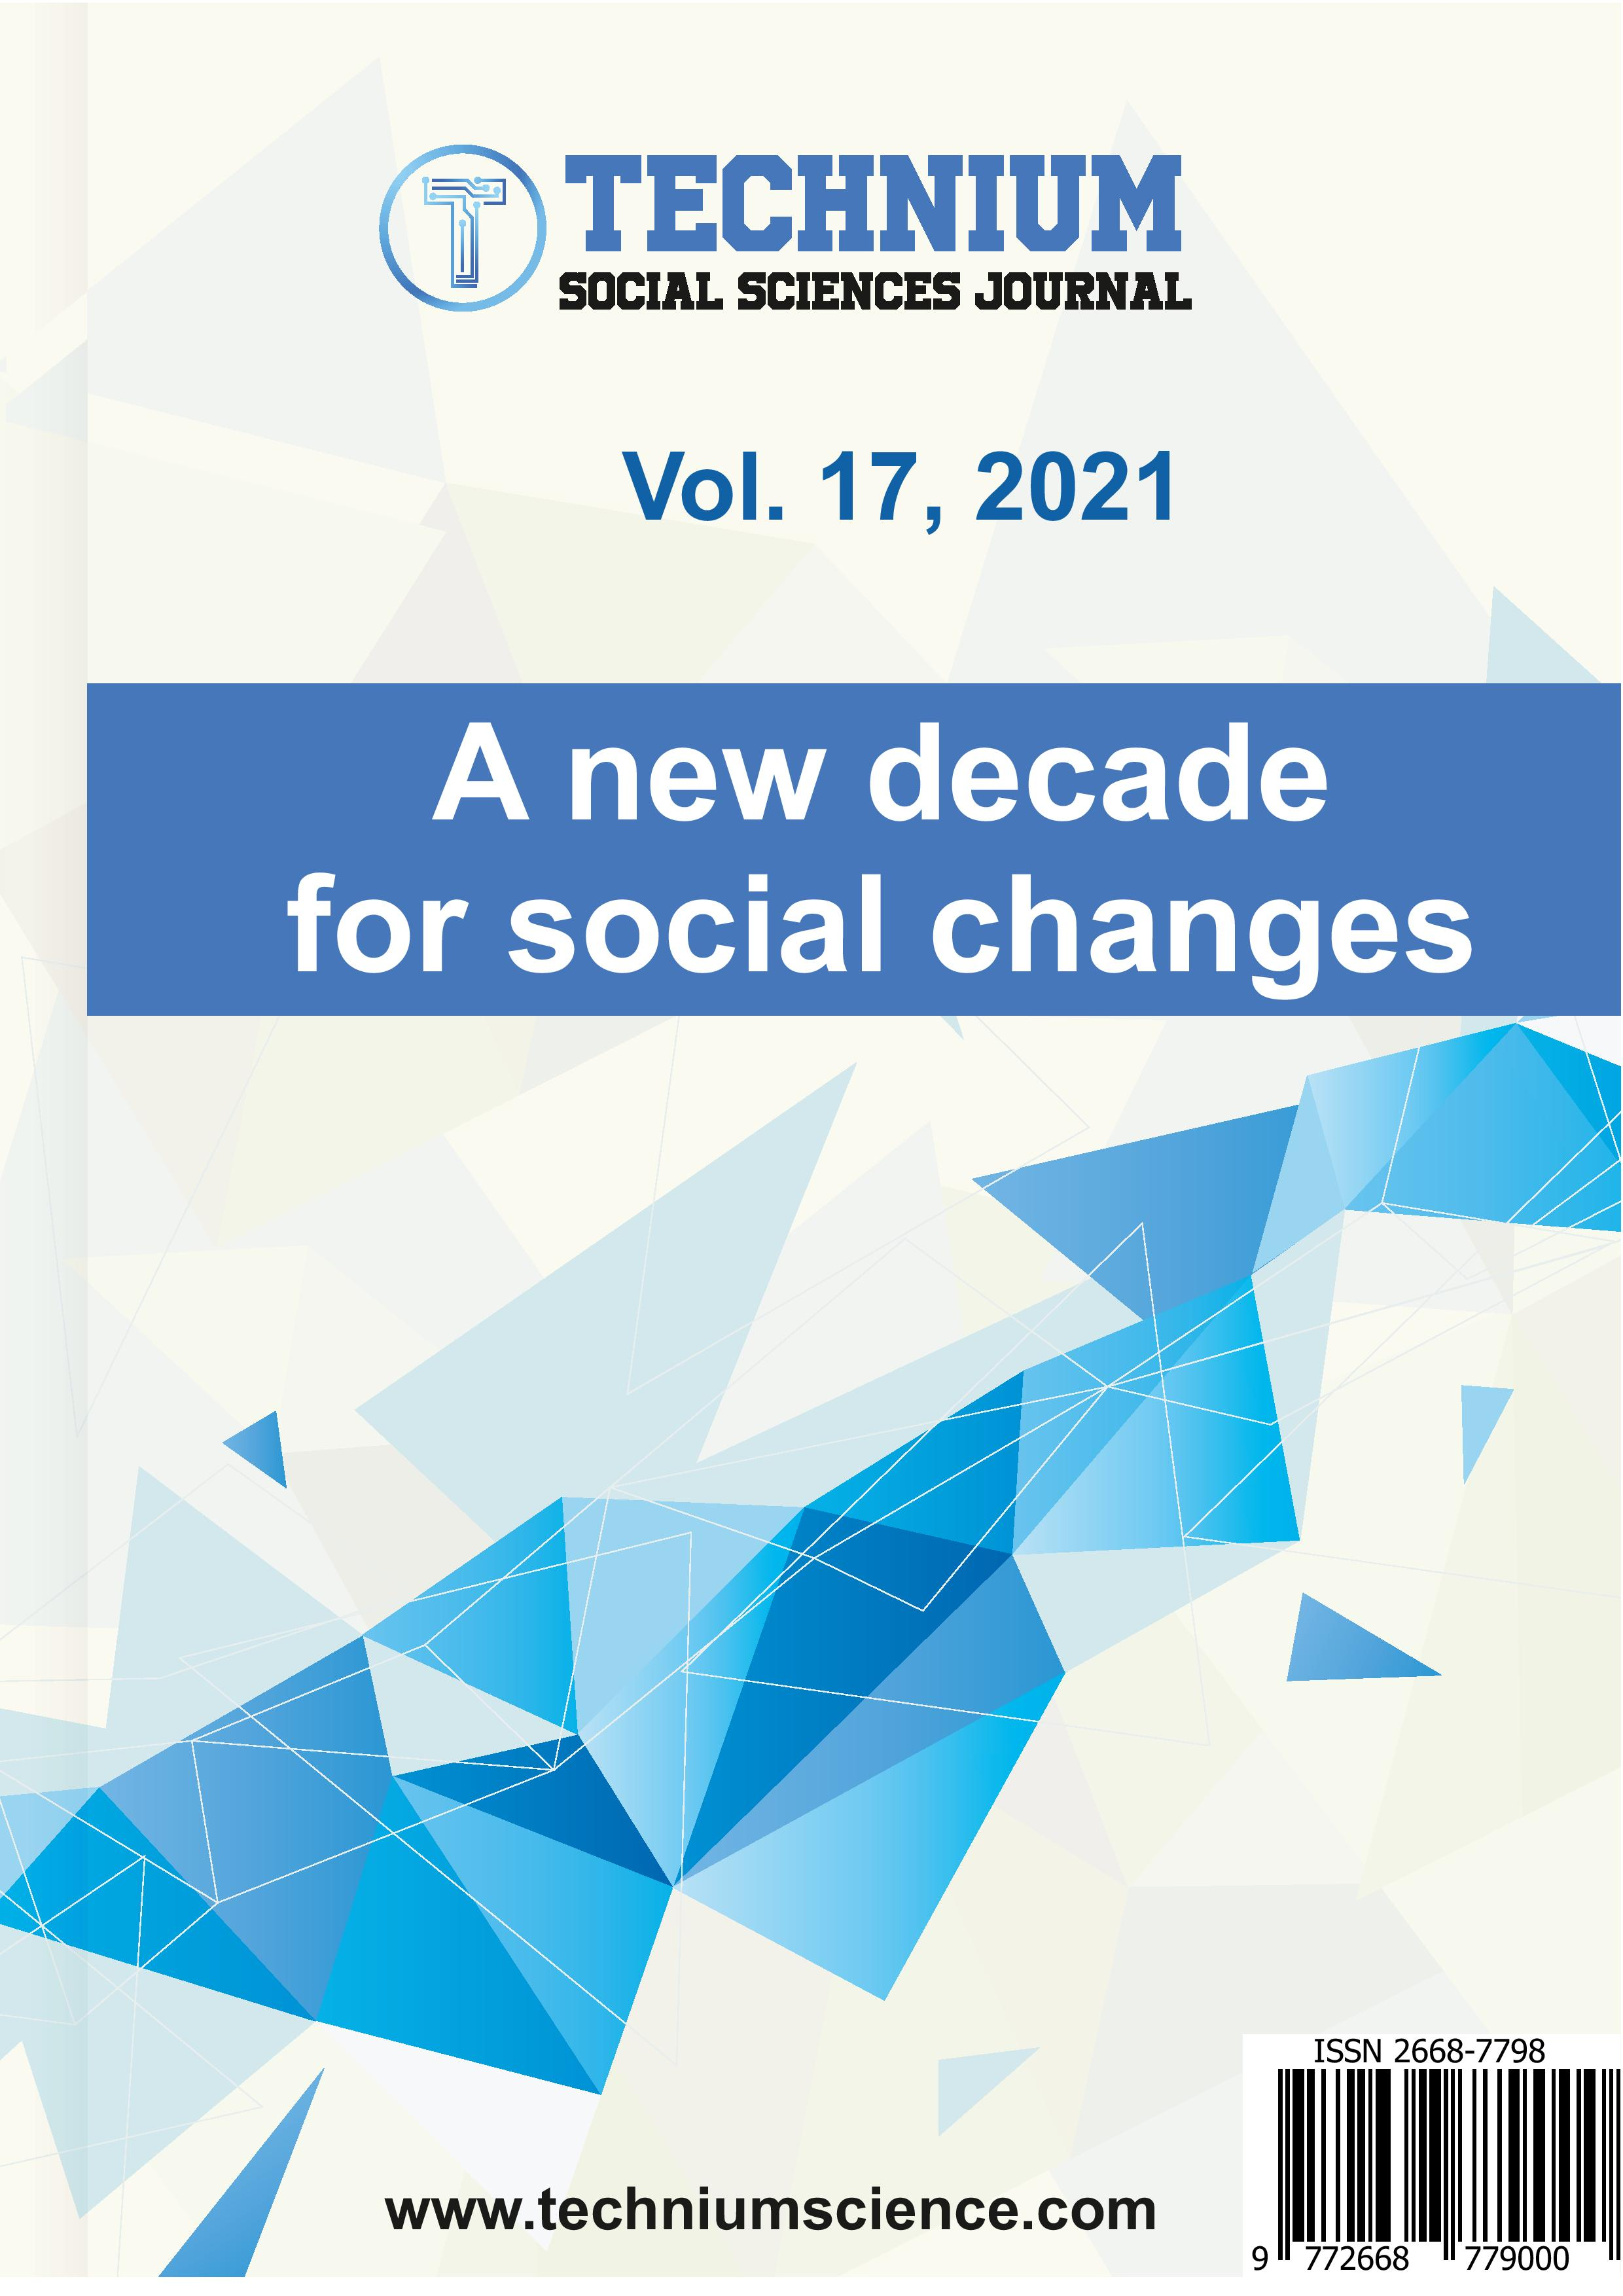 View Vol. 17 (2021): A new decade for social changes